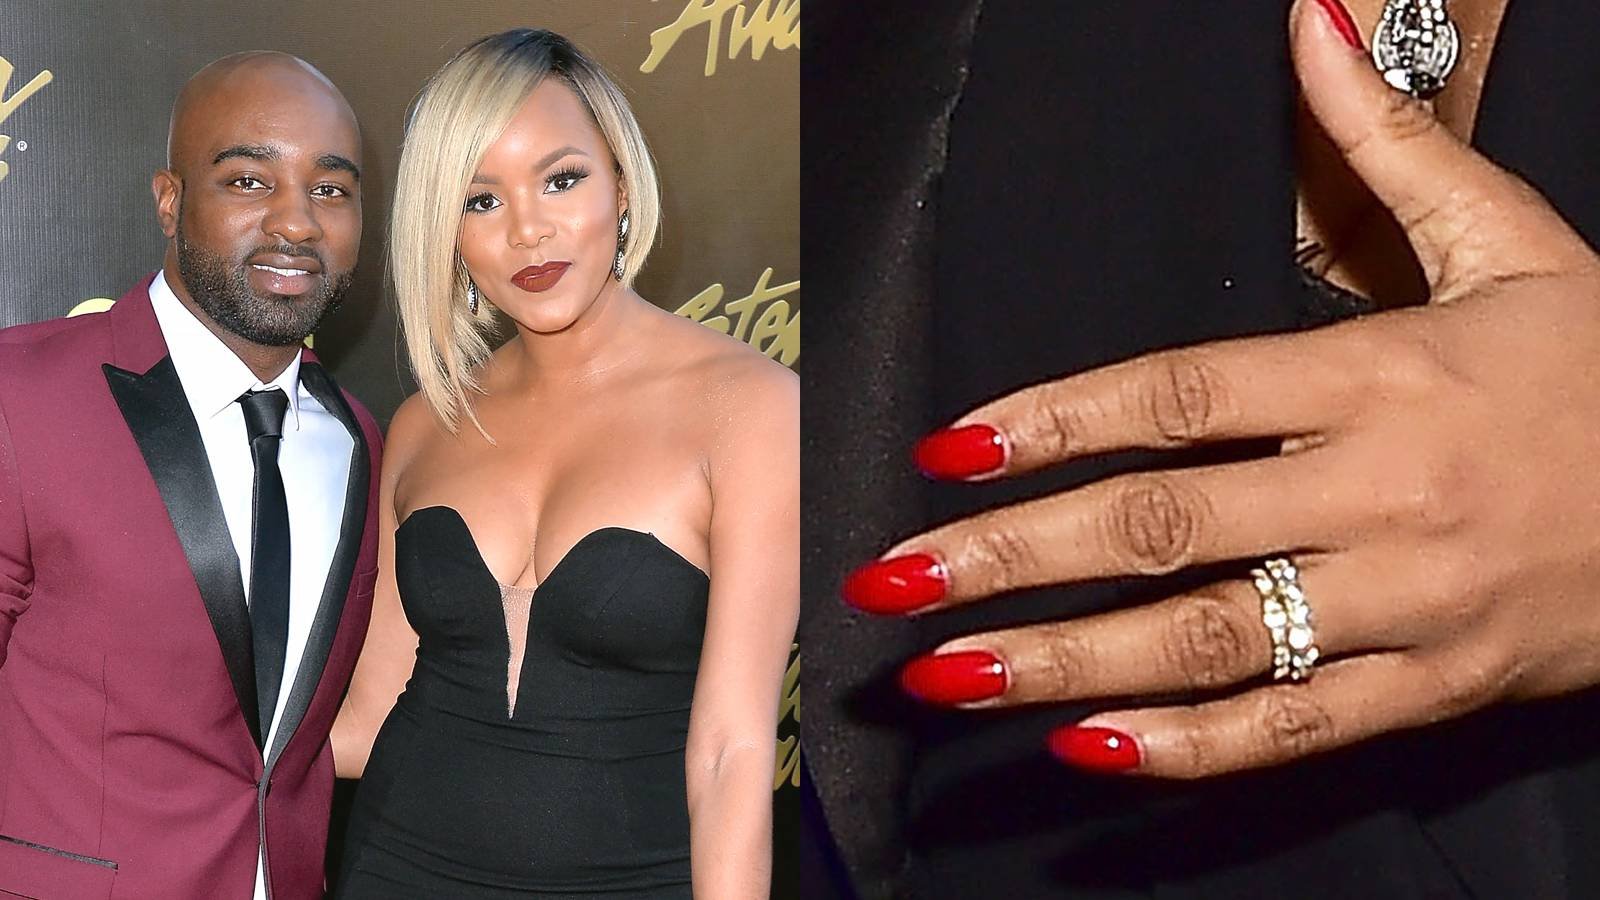 """LeToya Luckett - The actress is working not one, but two diamond-encrusted bands! The twin bands appear to be set in gold, with thick baguette diamonds studded all around. She said """"yes"""" to her fiancé, Rob Hill, Sr., in January 2016 after dating for less than a year.(Photos from left: Earl Gibson III/Getty Images, Paras Griffin/WireImage)"""